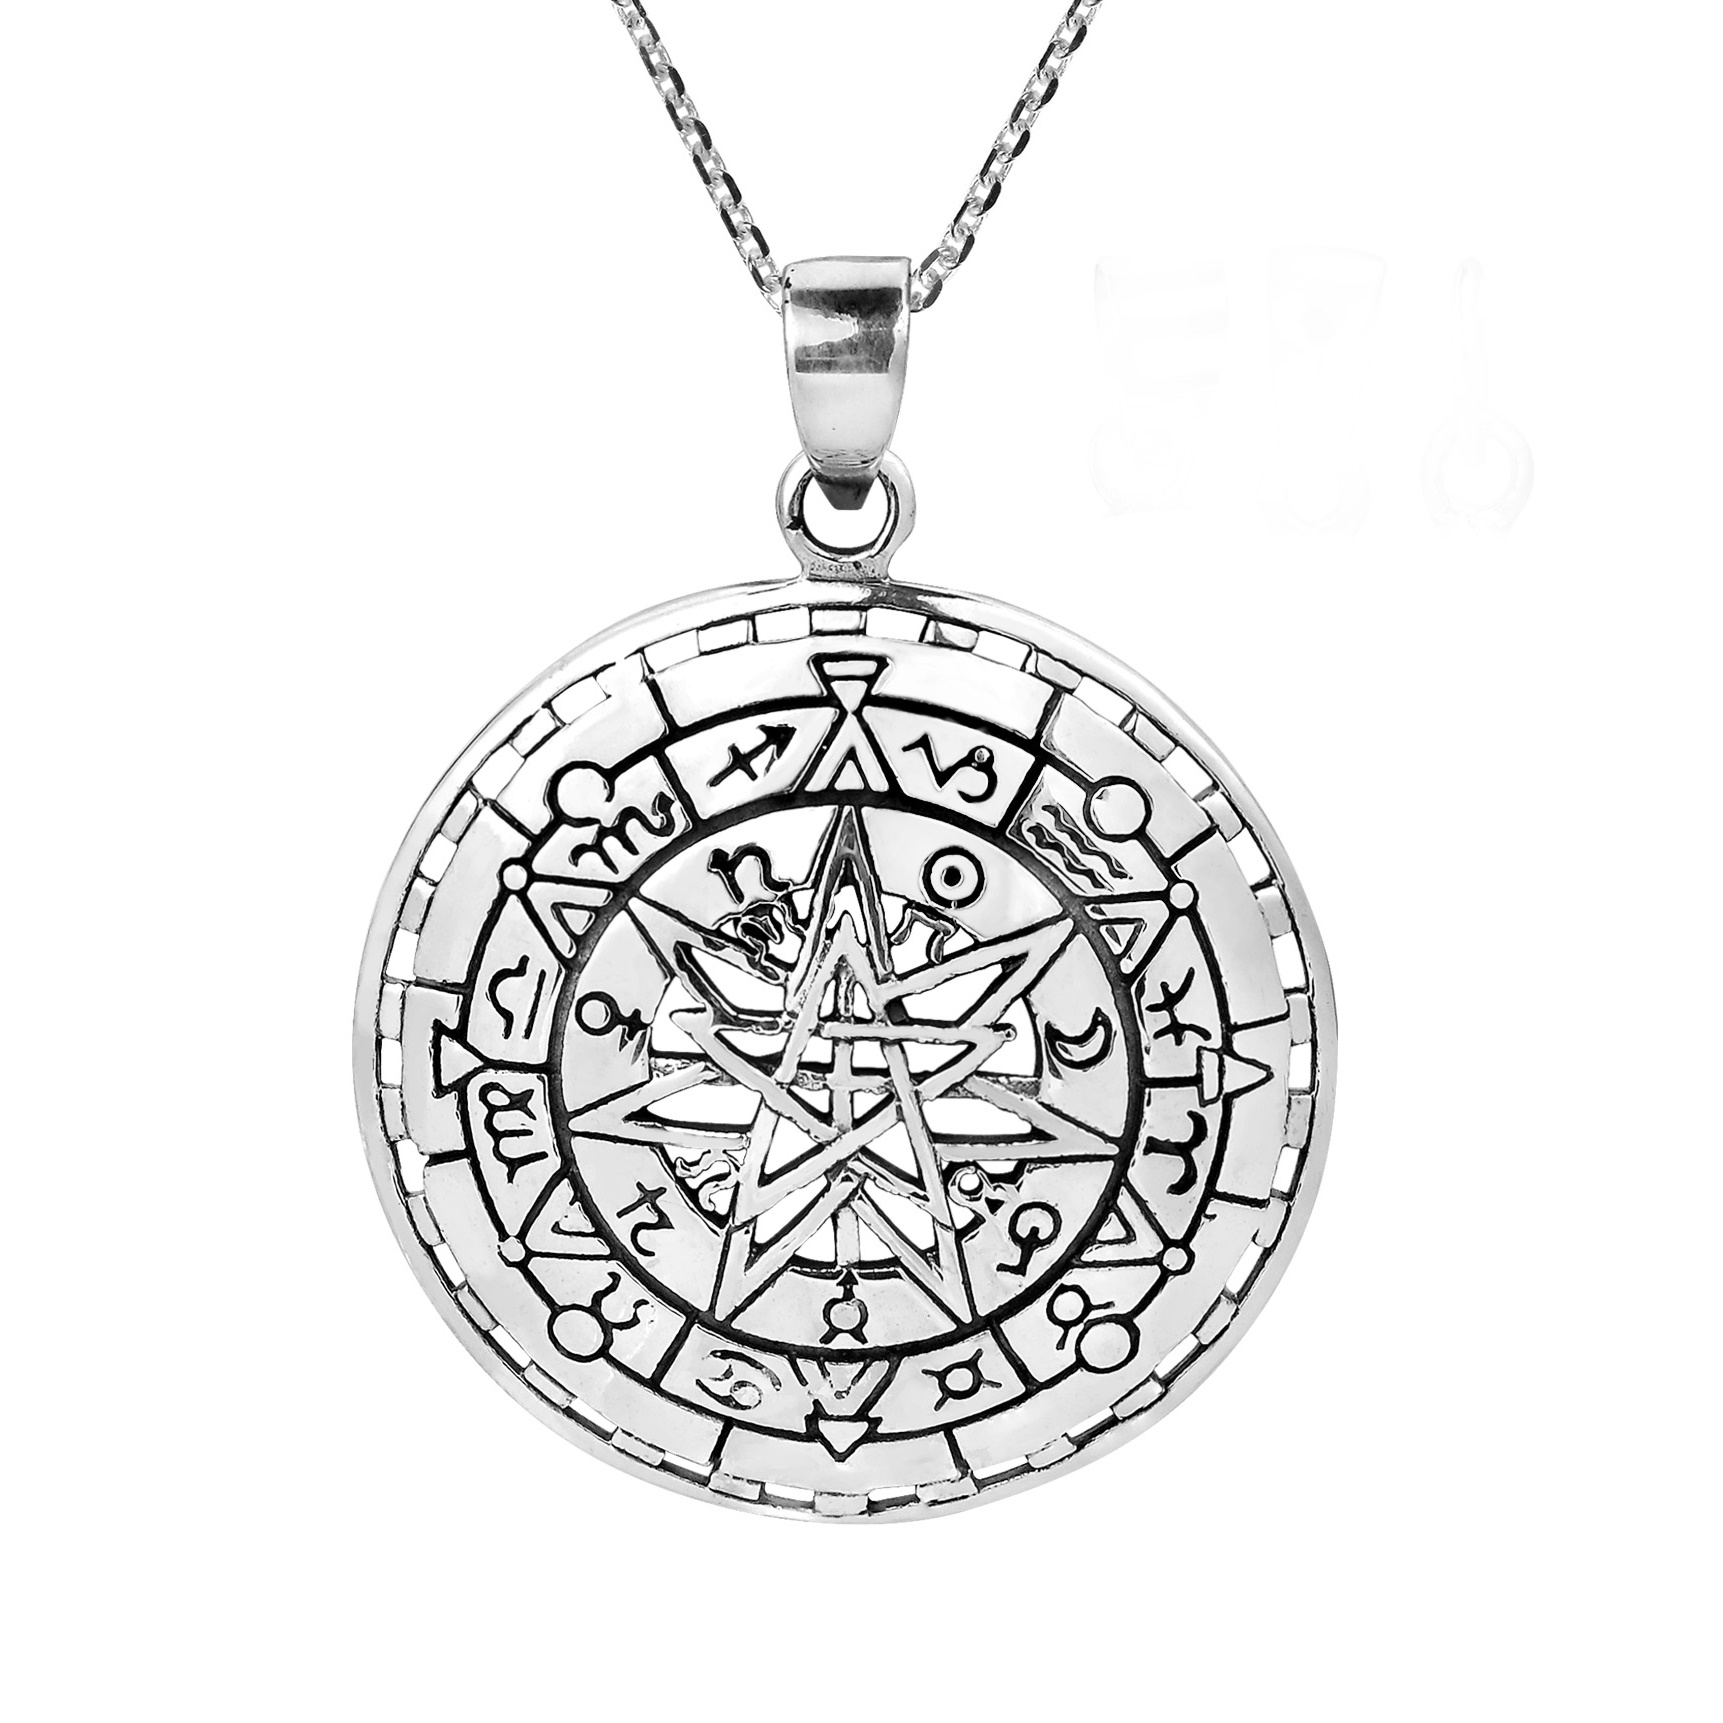 Mystical zodiac compass calendar sterling silver necklace aeravida expertly crafted by hand in the northern thailand workshop of khun o this pendant showcases aloadofball Images